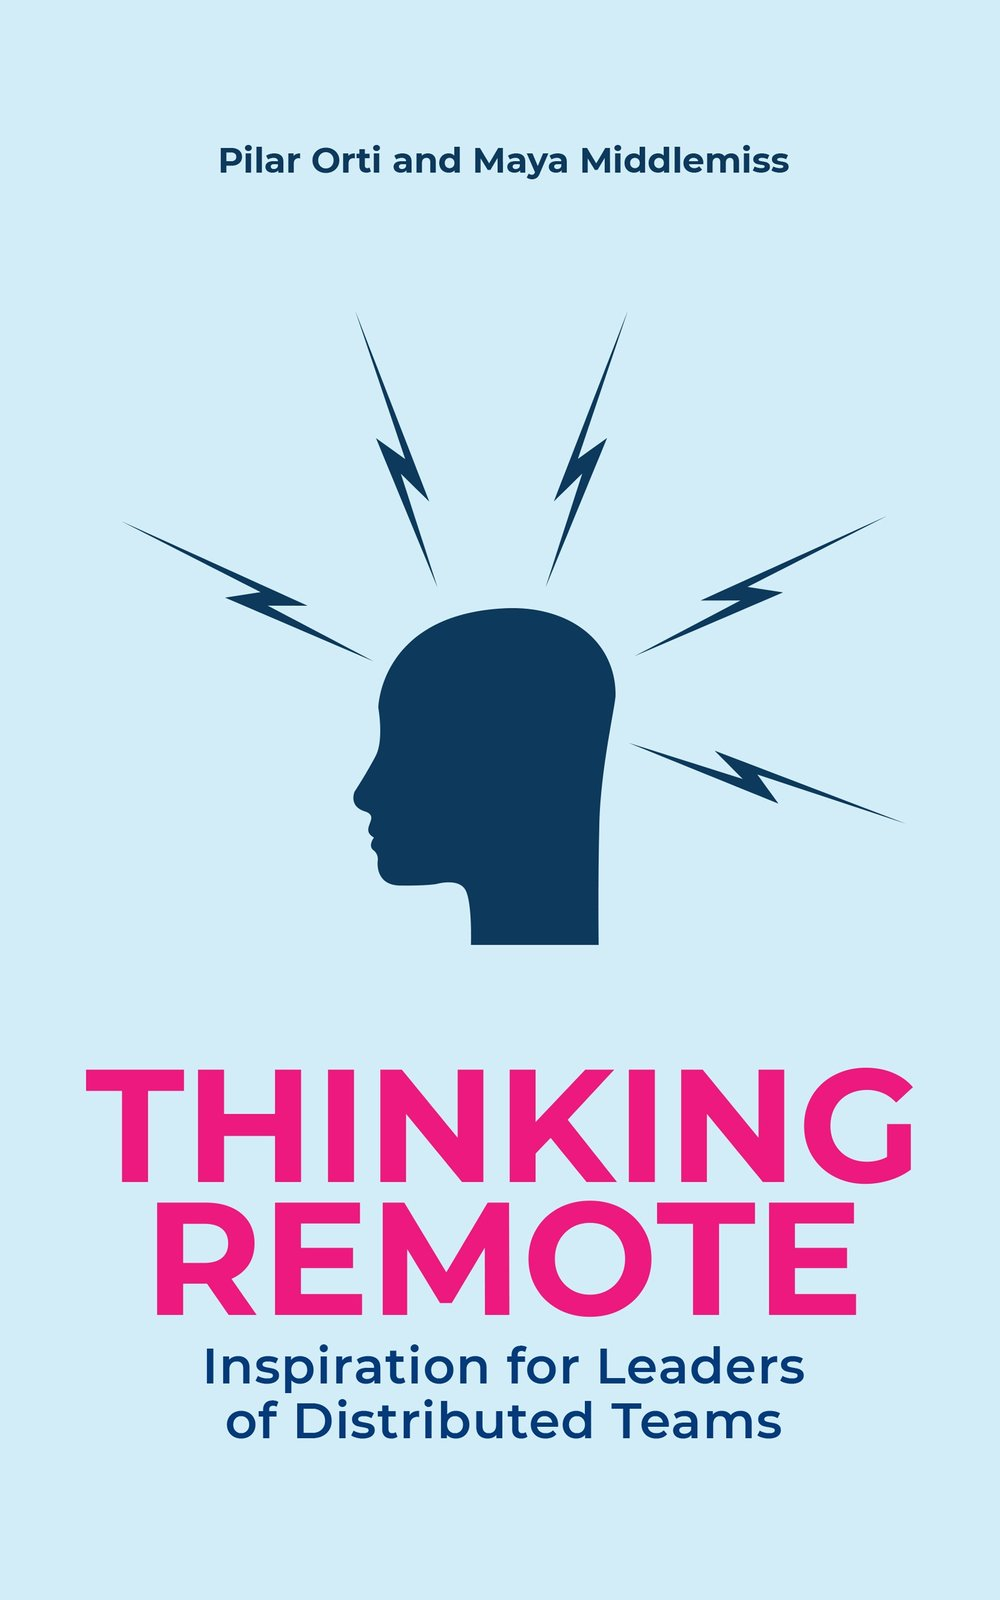 THINKING REMOTEA collection of articles to guide you through the mindset change towards